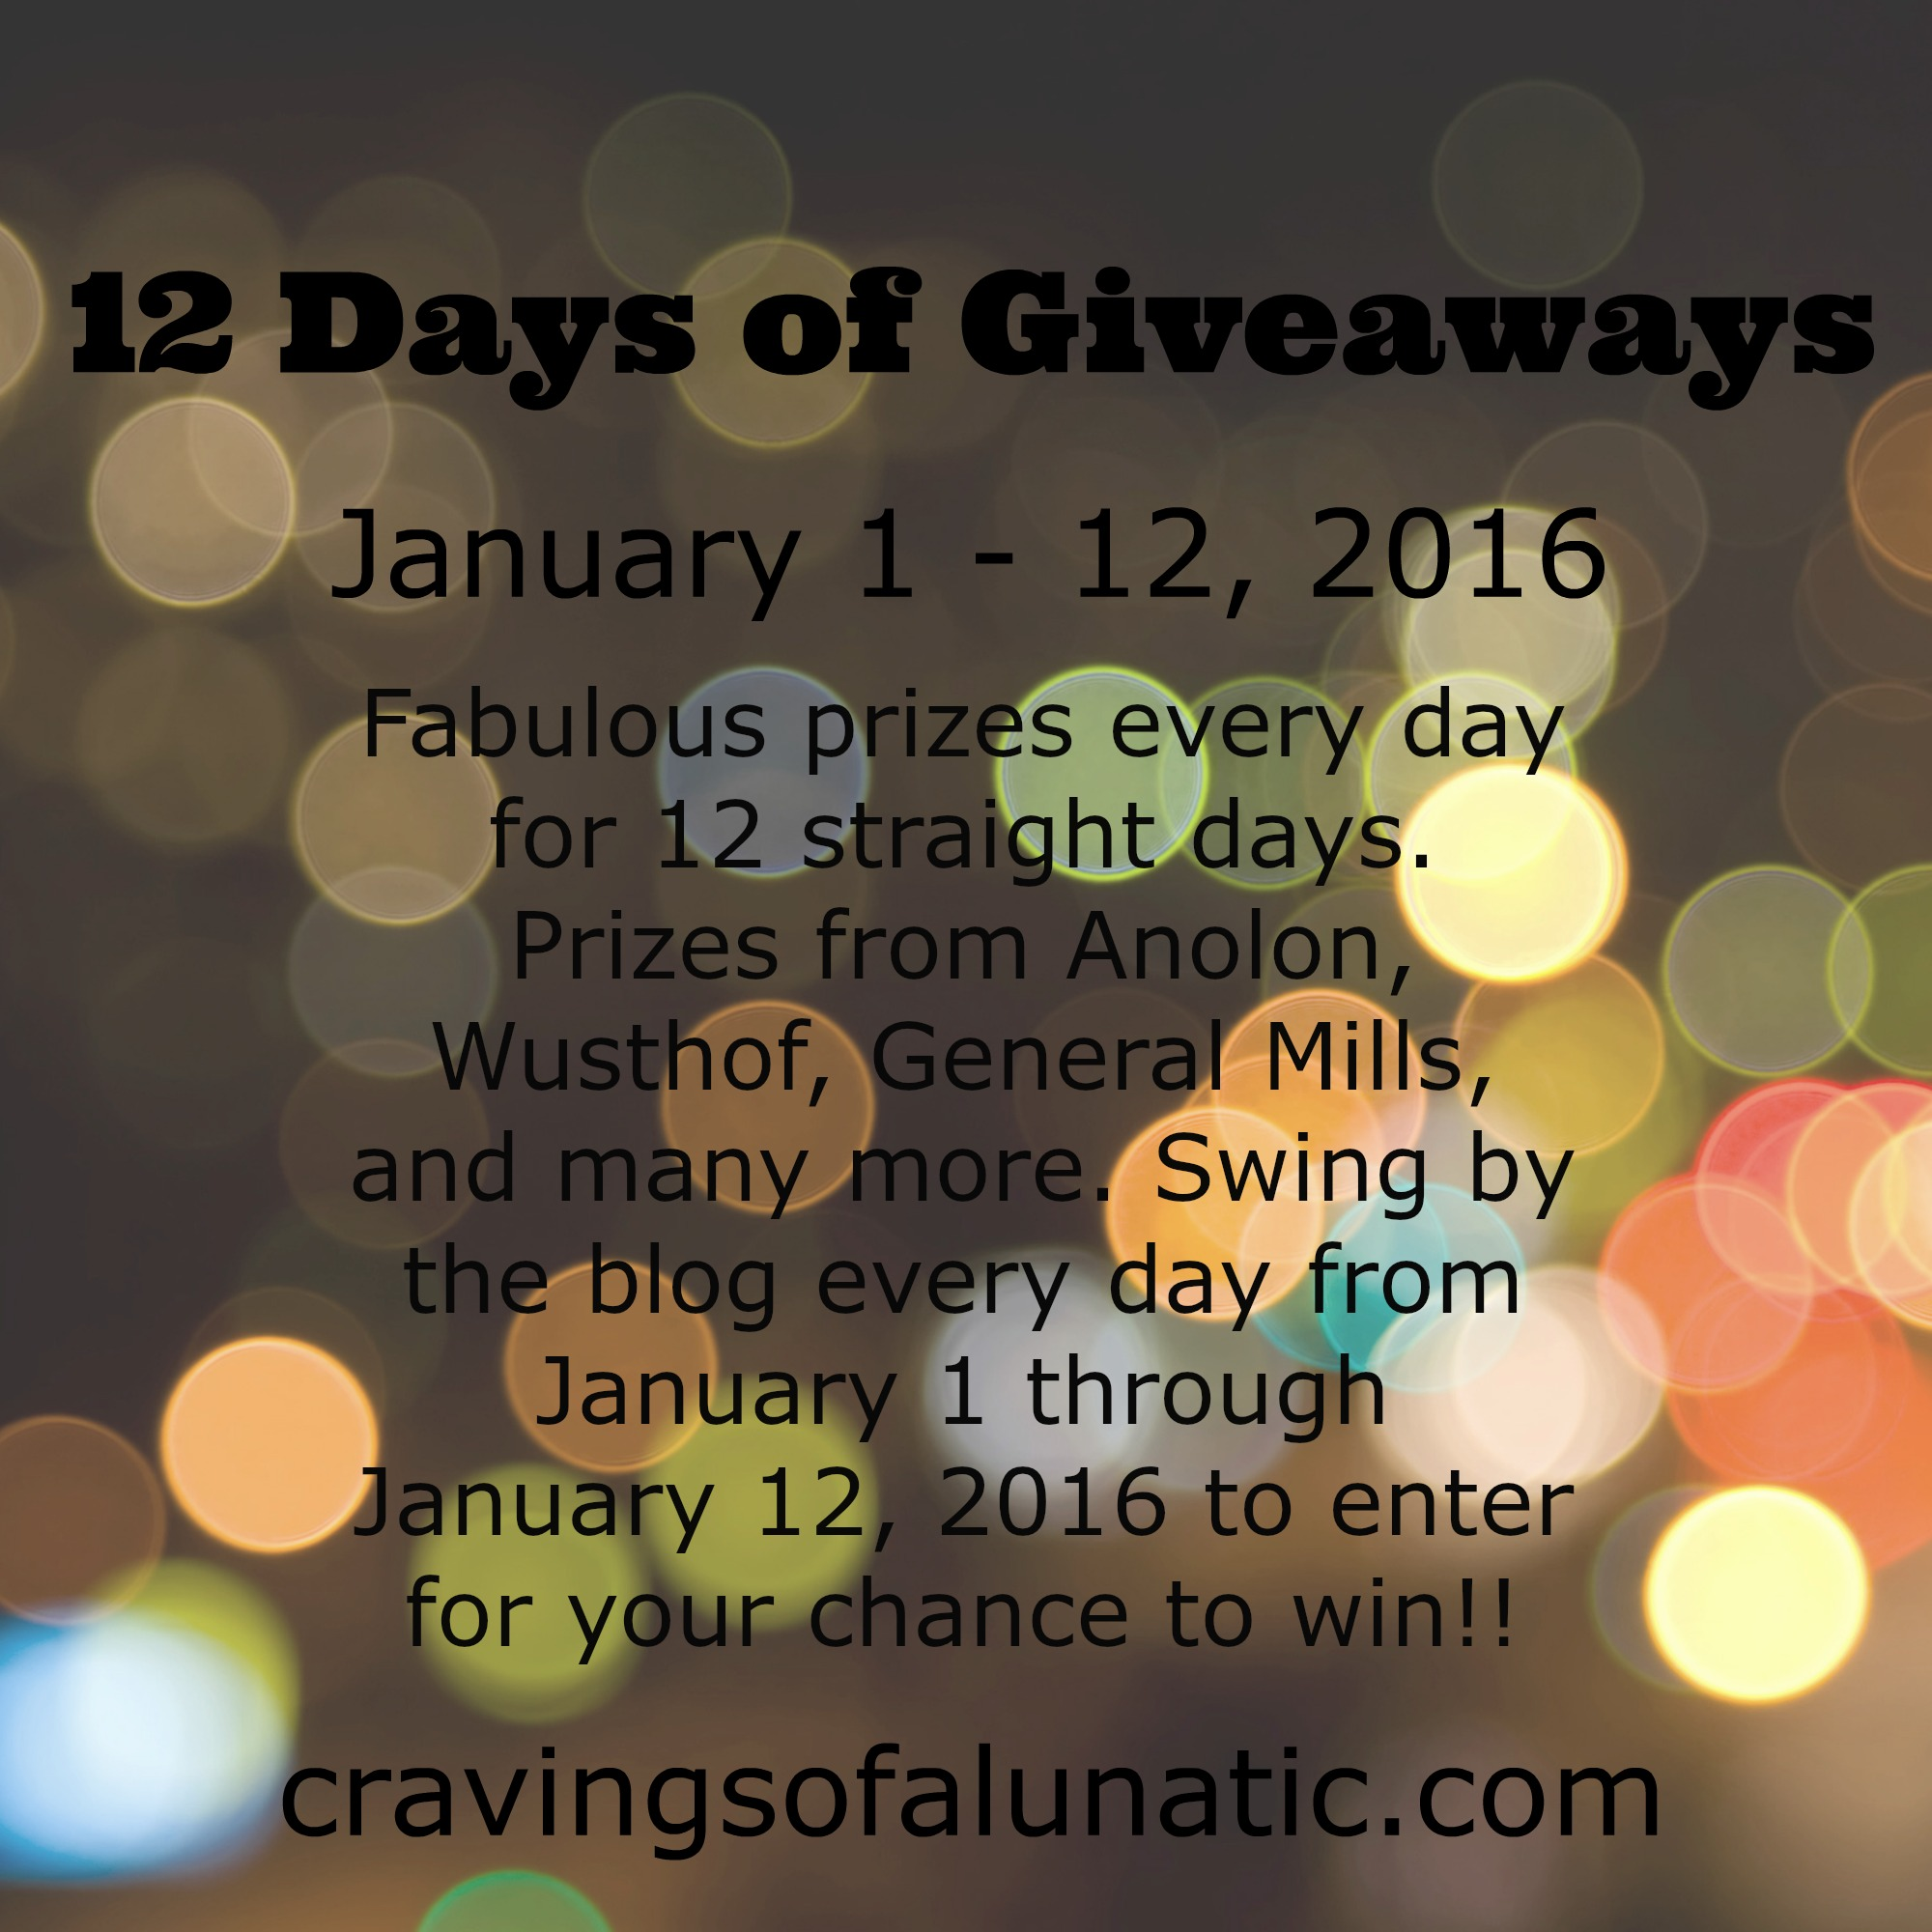 12 Days of Giveaways on cravingsofalunatic.com- event runs from January 1 to 12, 2016. Lots of prizes up for grabs! (@CravingsLunatic)